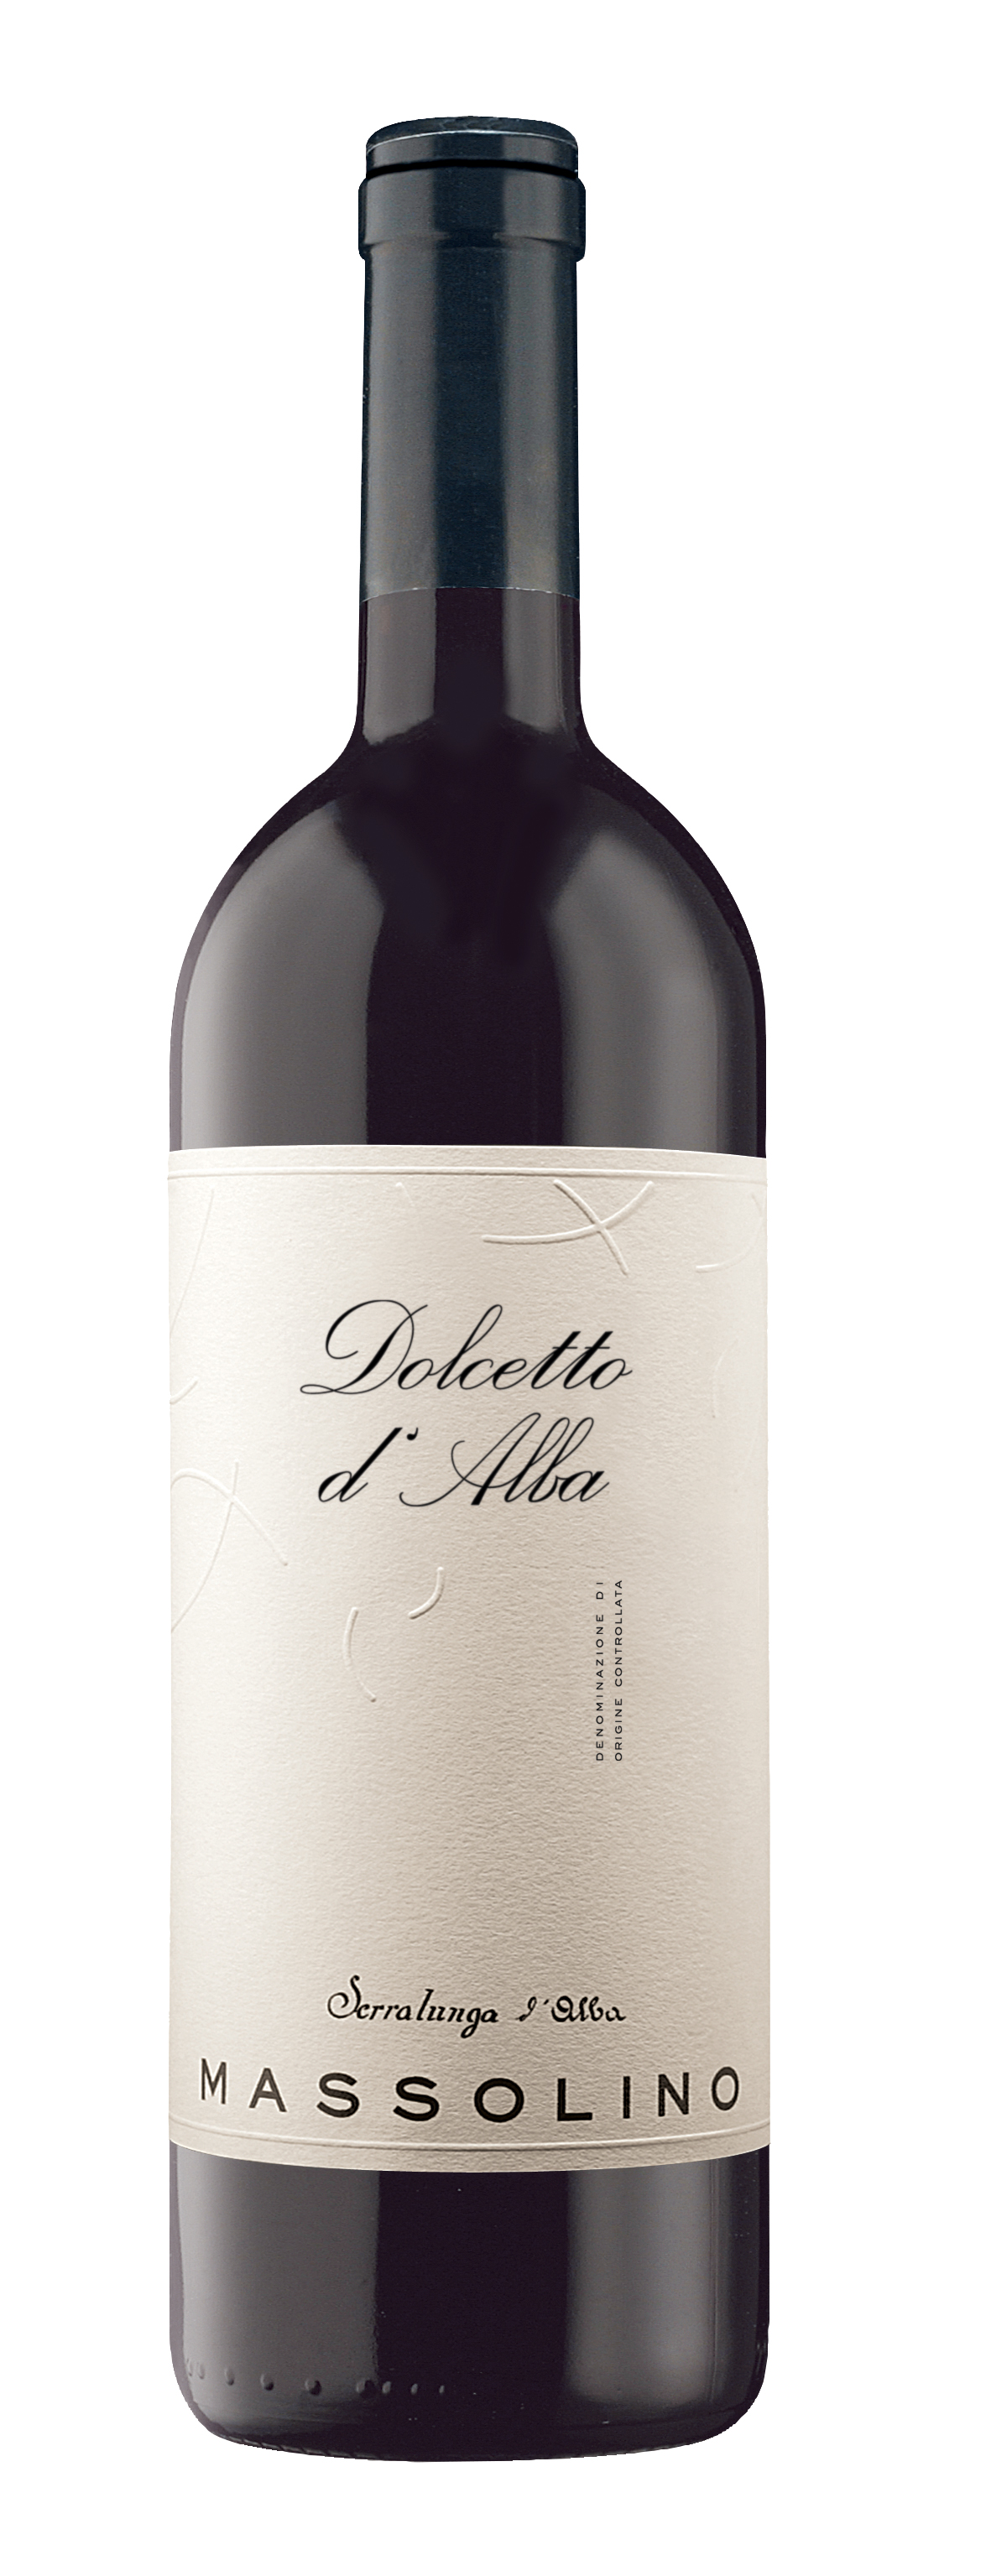 Massolino Dolcetto d'Alba Bottle.jpg